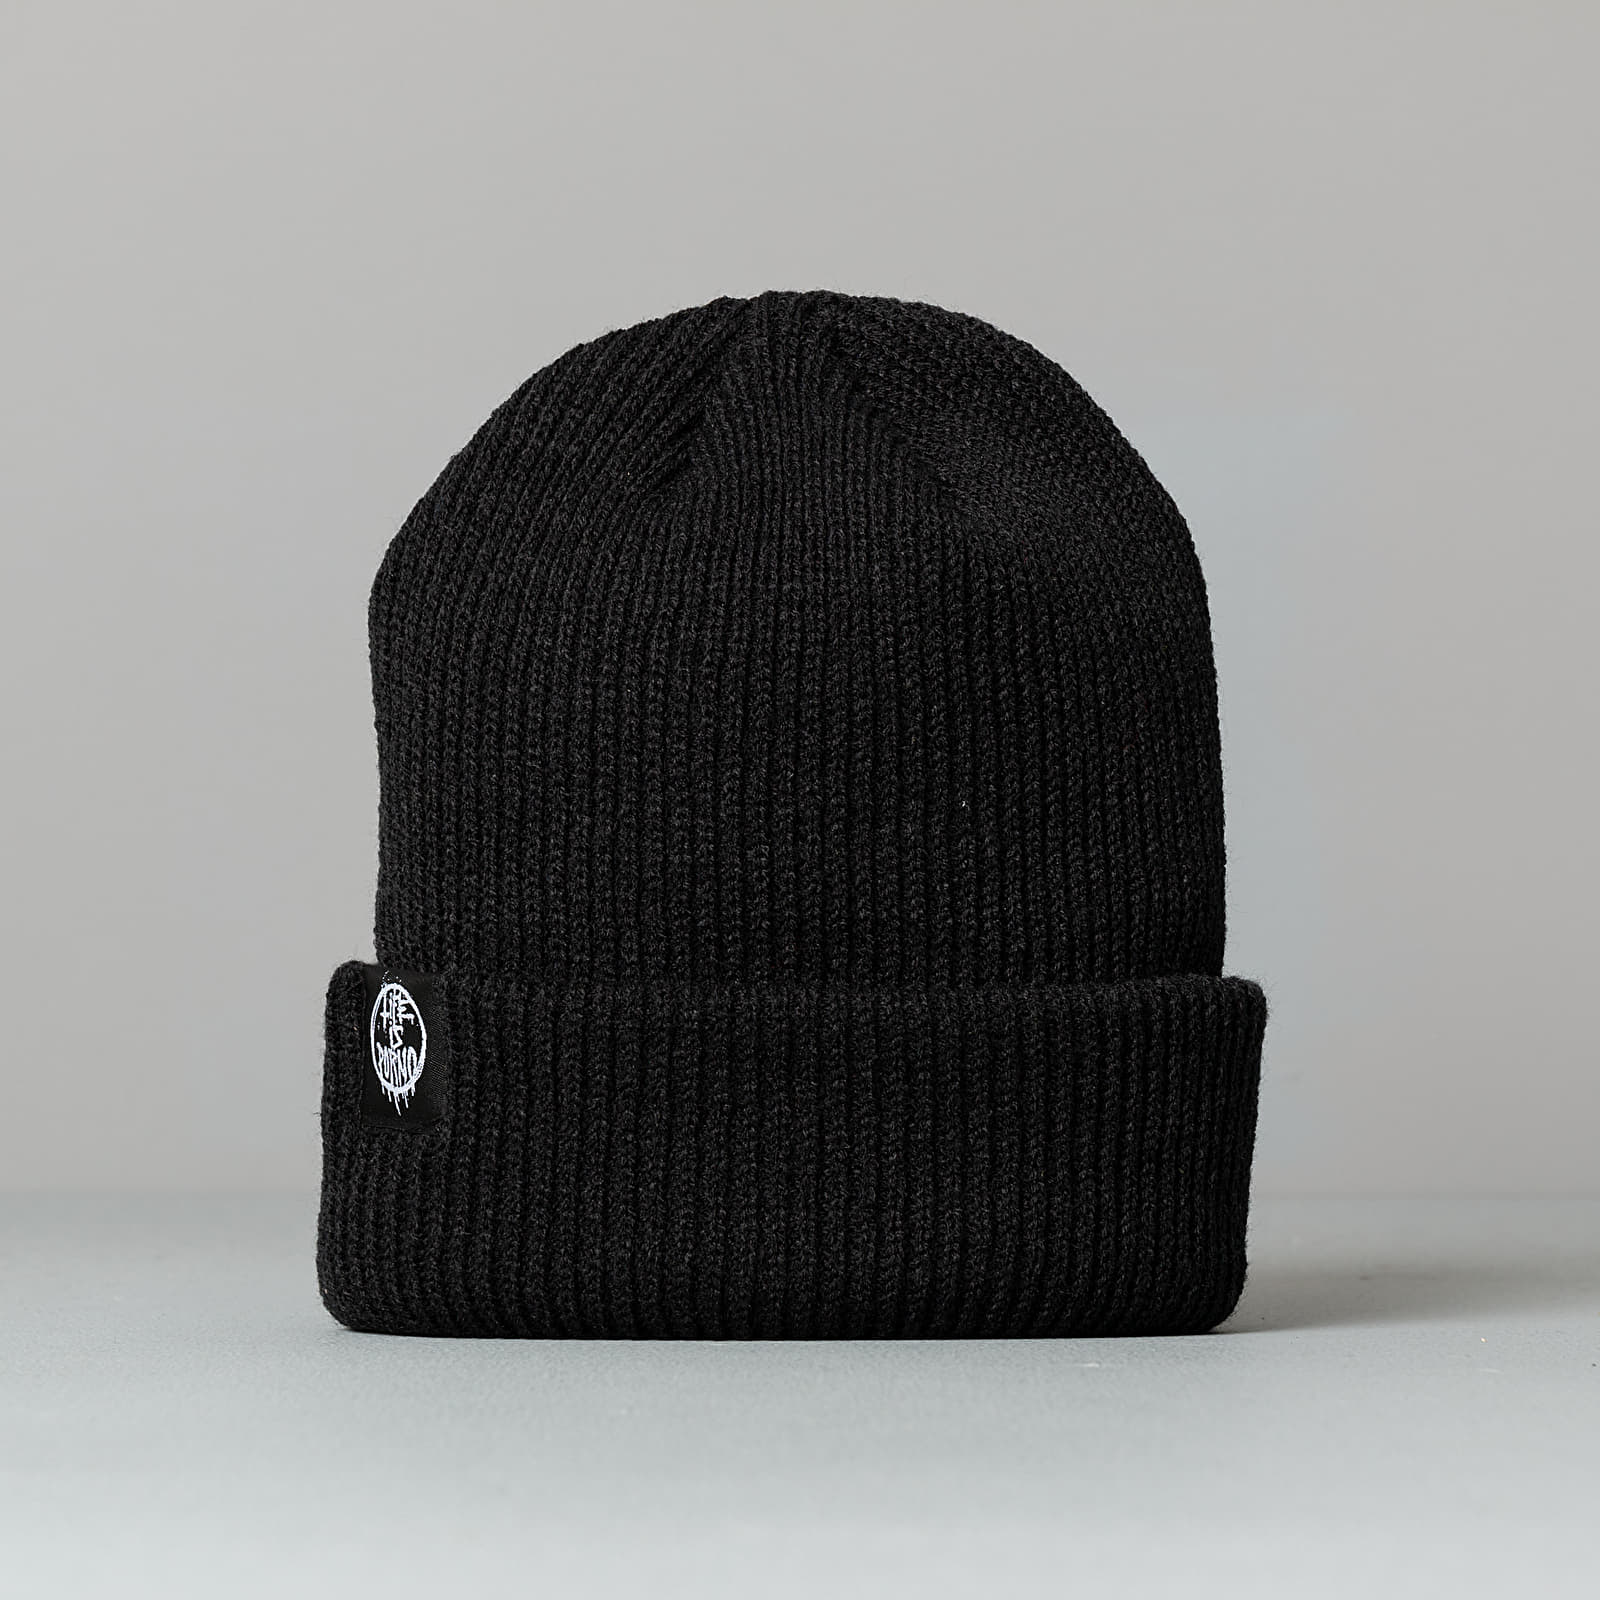 LIFE IS PORNO FISHERMAN Beanie